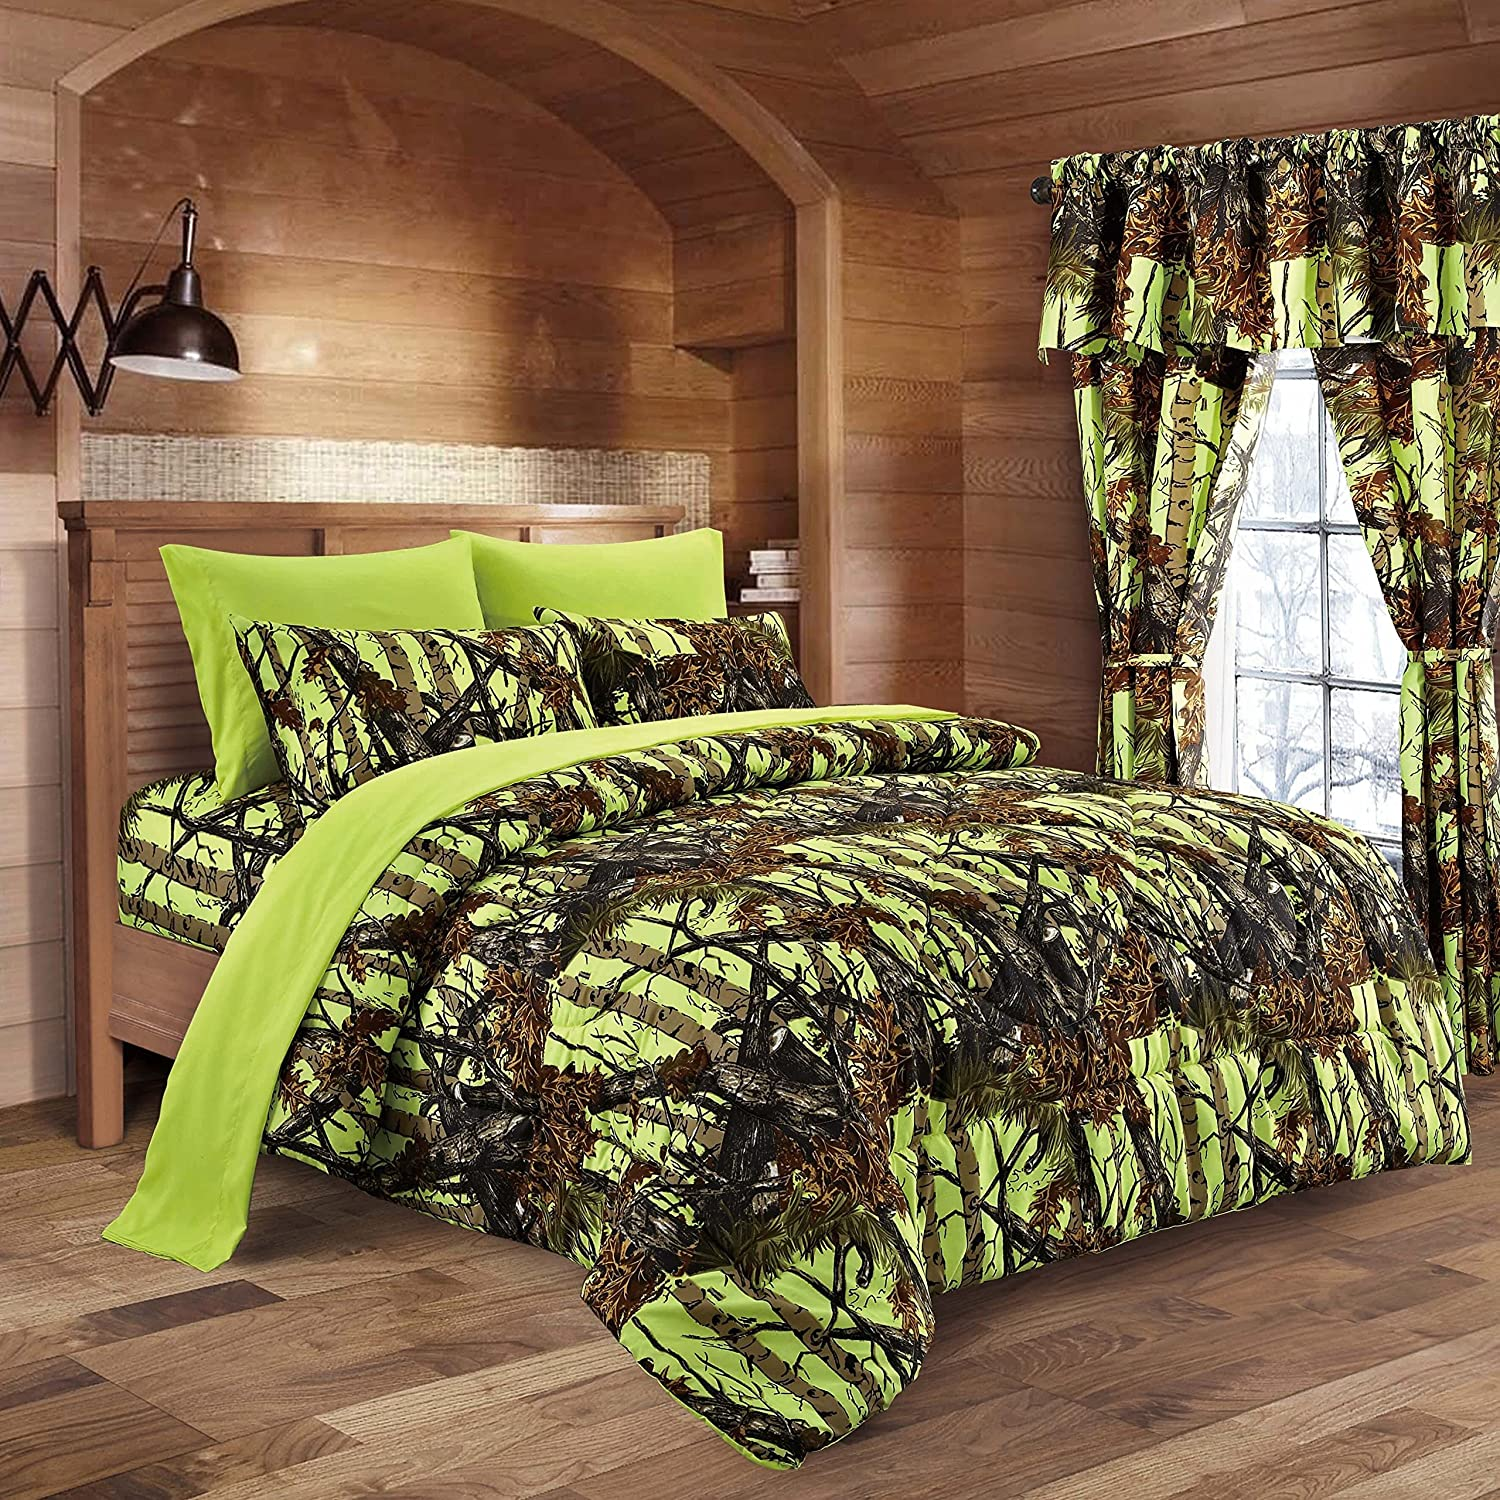 amazoncom  lakes neon green lime camo comforter sheet  - amazoncom  lakes neon green lime camo comforter sheet  pillowcaseset (twin neon green) home  kitchen